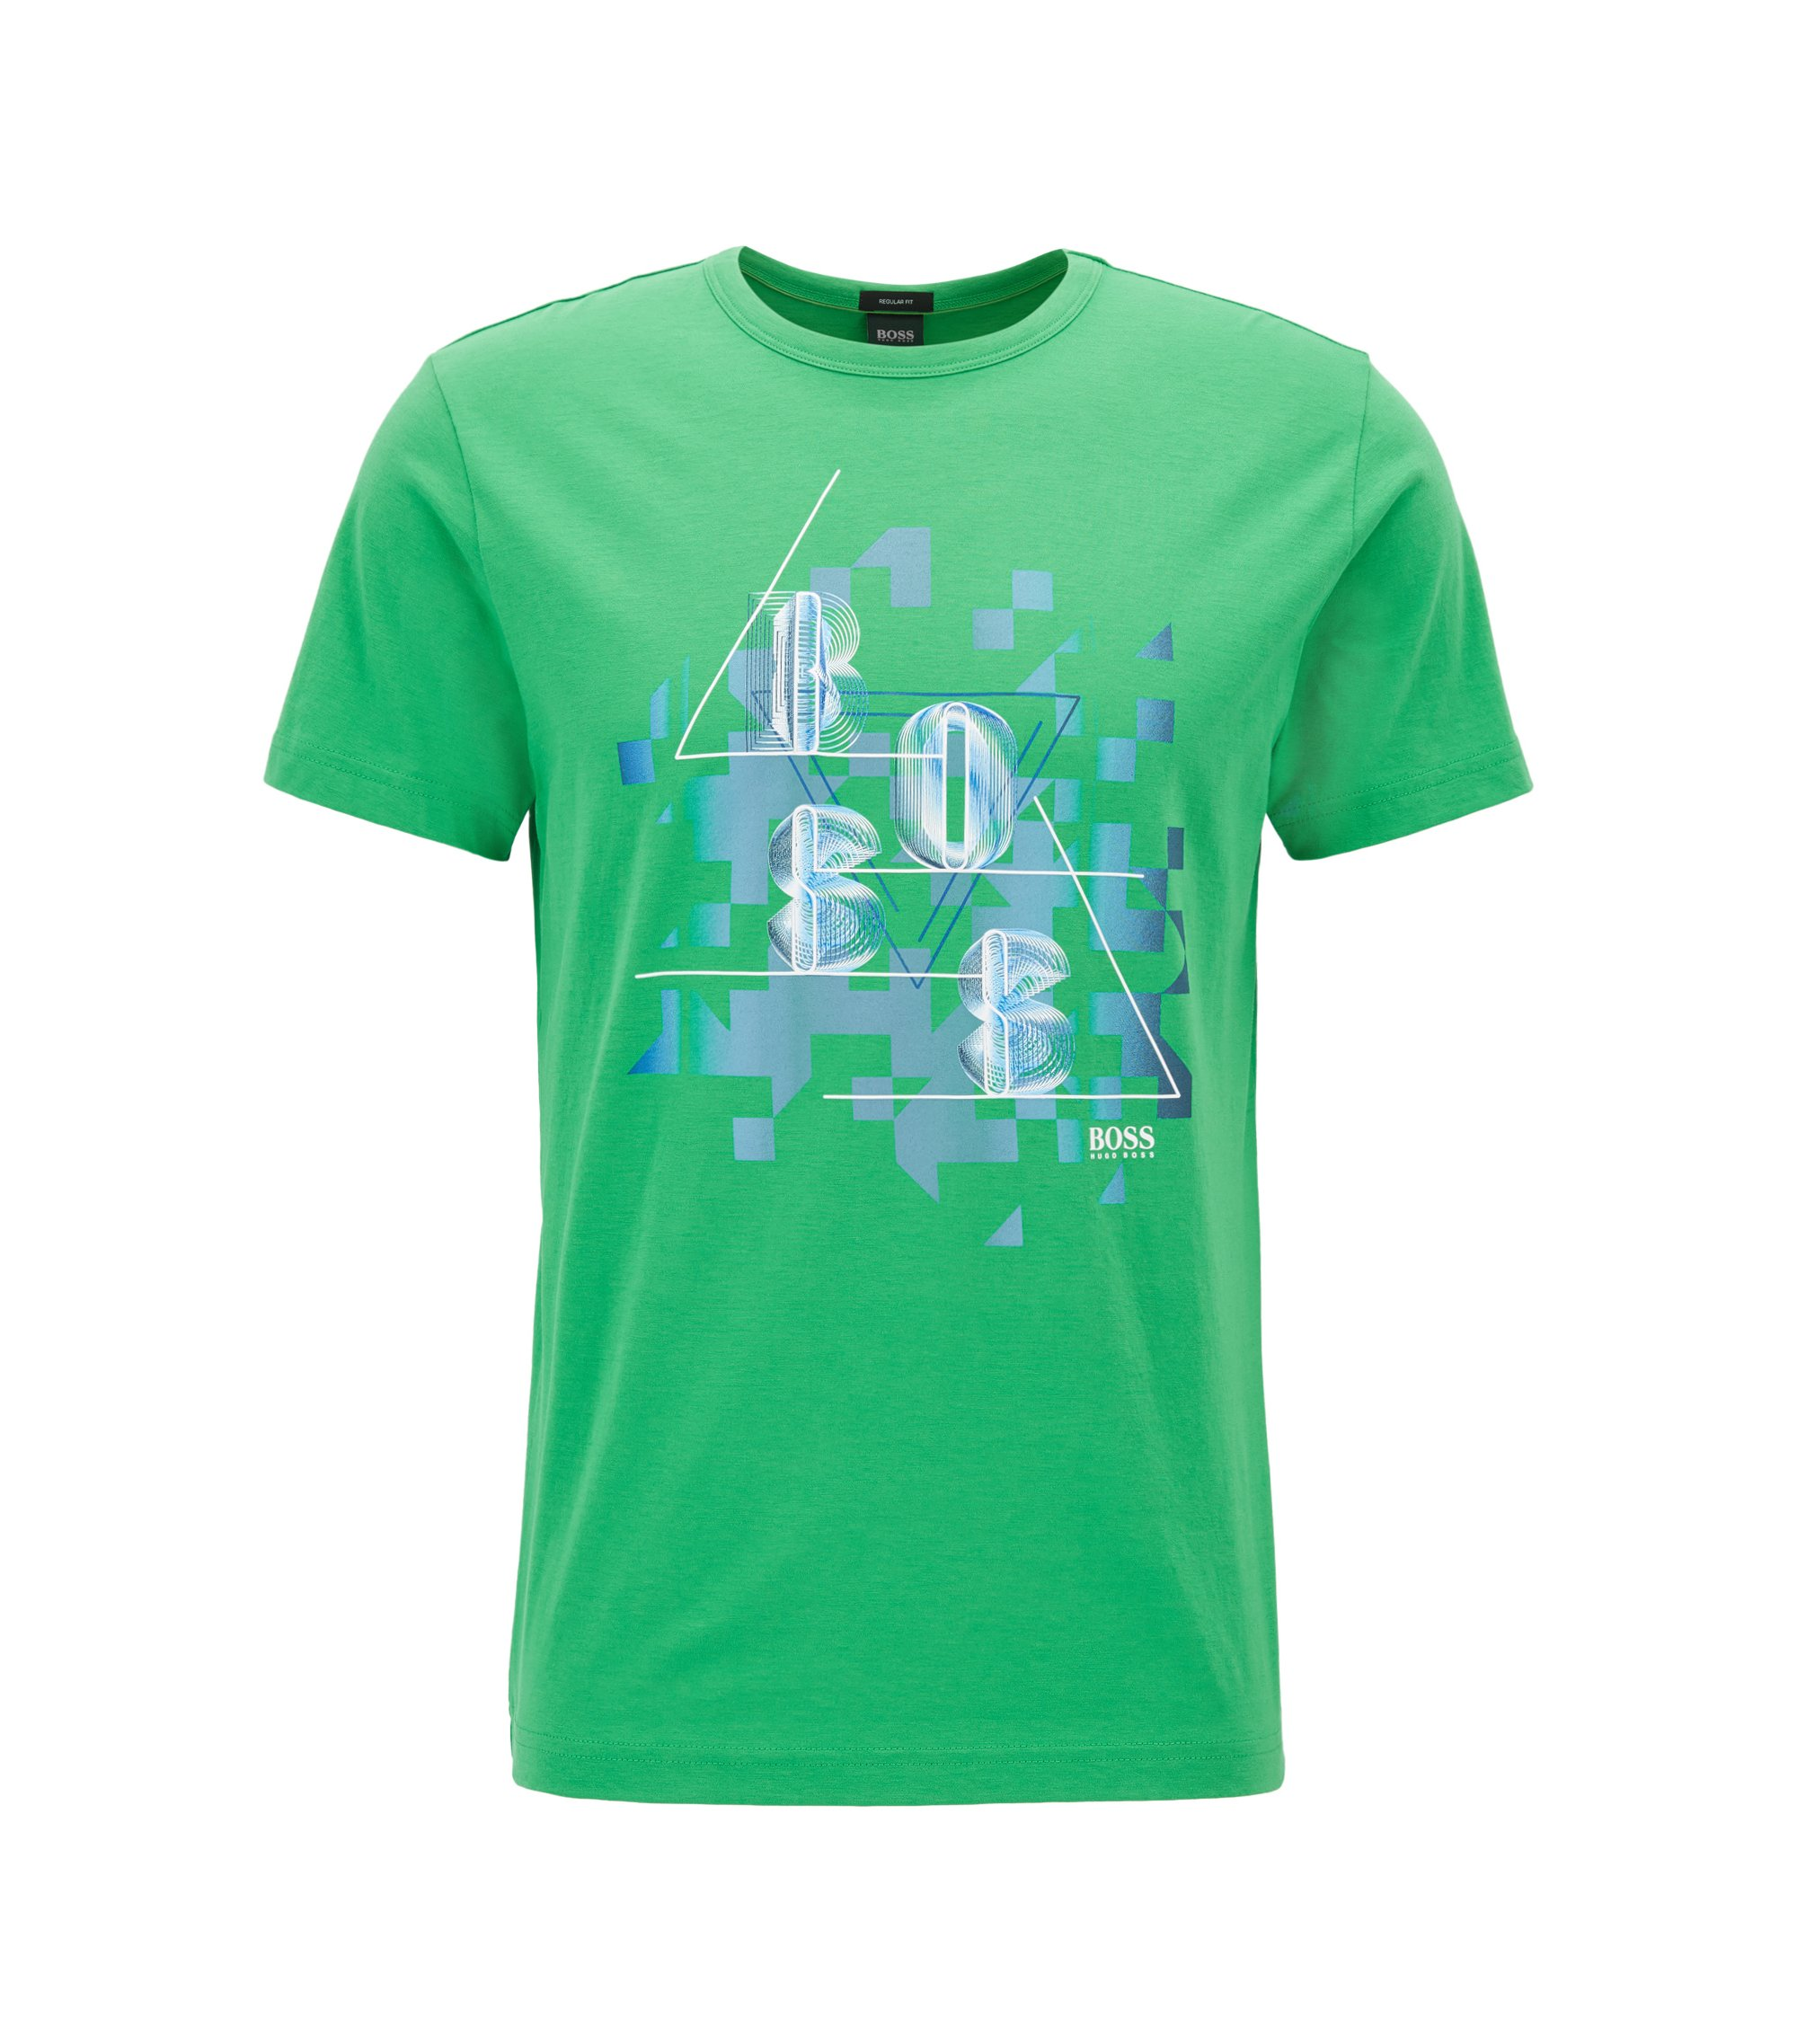 Cotton Graphic T-Shirt | Tee, Green